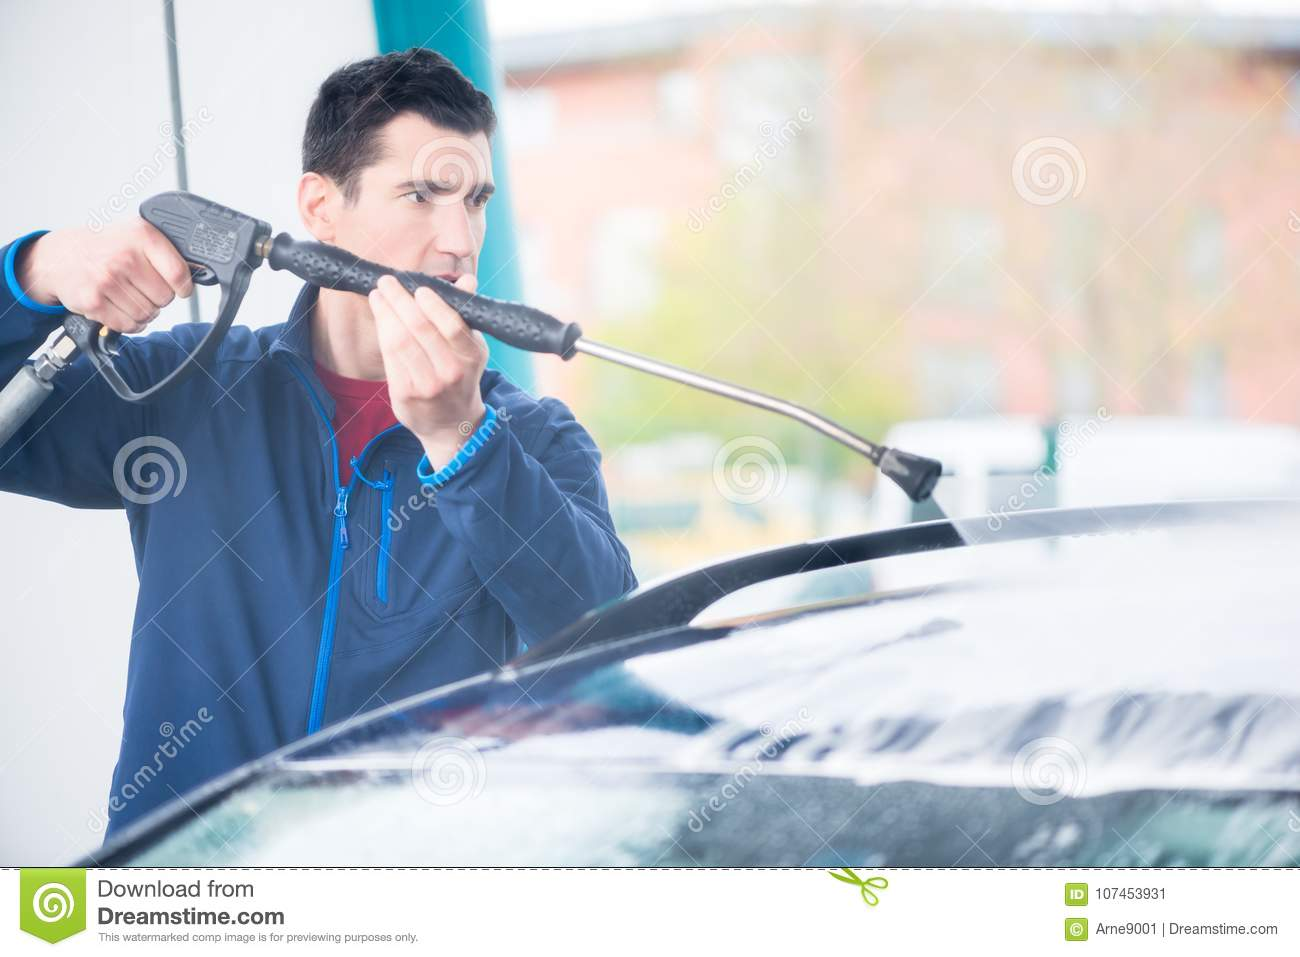 Dedicated worker washing car with high-pressure hose